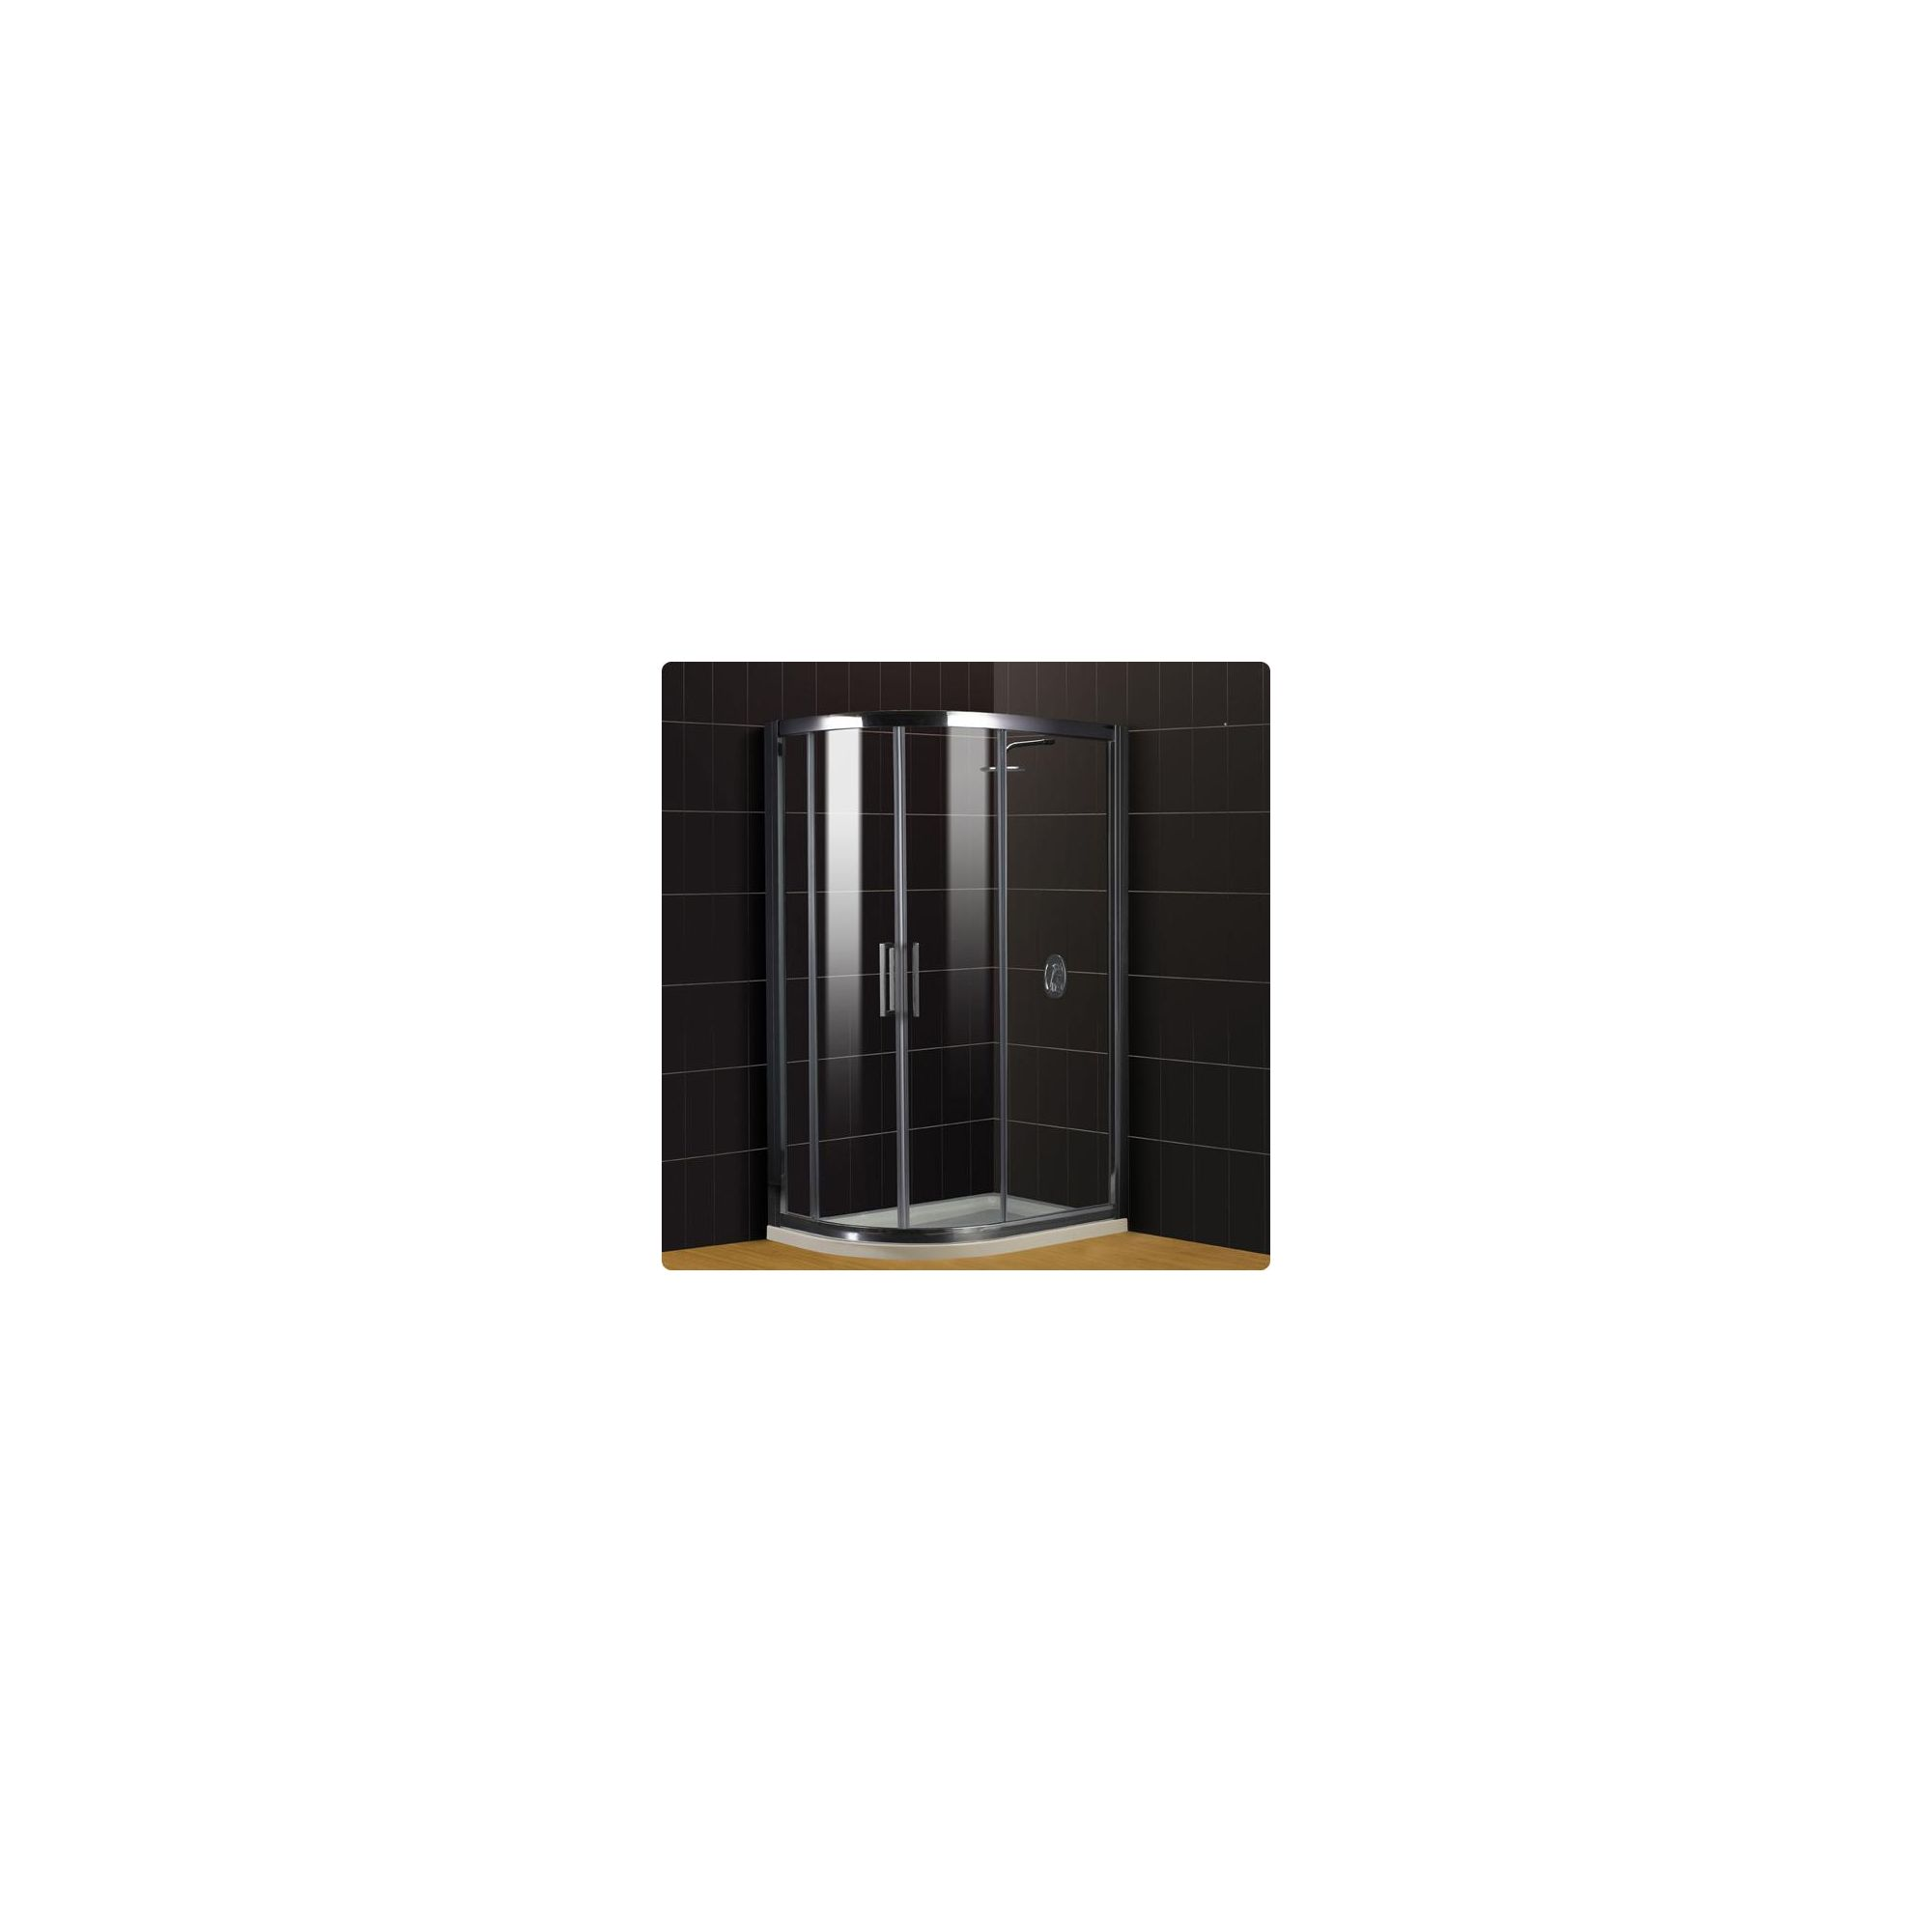 Duchy Supreme Silver Offset Quadrant Shower Enclosure (Complete with Tray) 900mm x 800mm, 8mm Glass at Tesco Direct